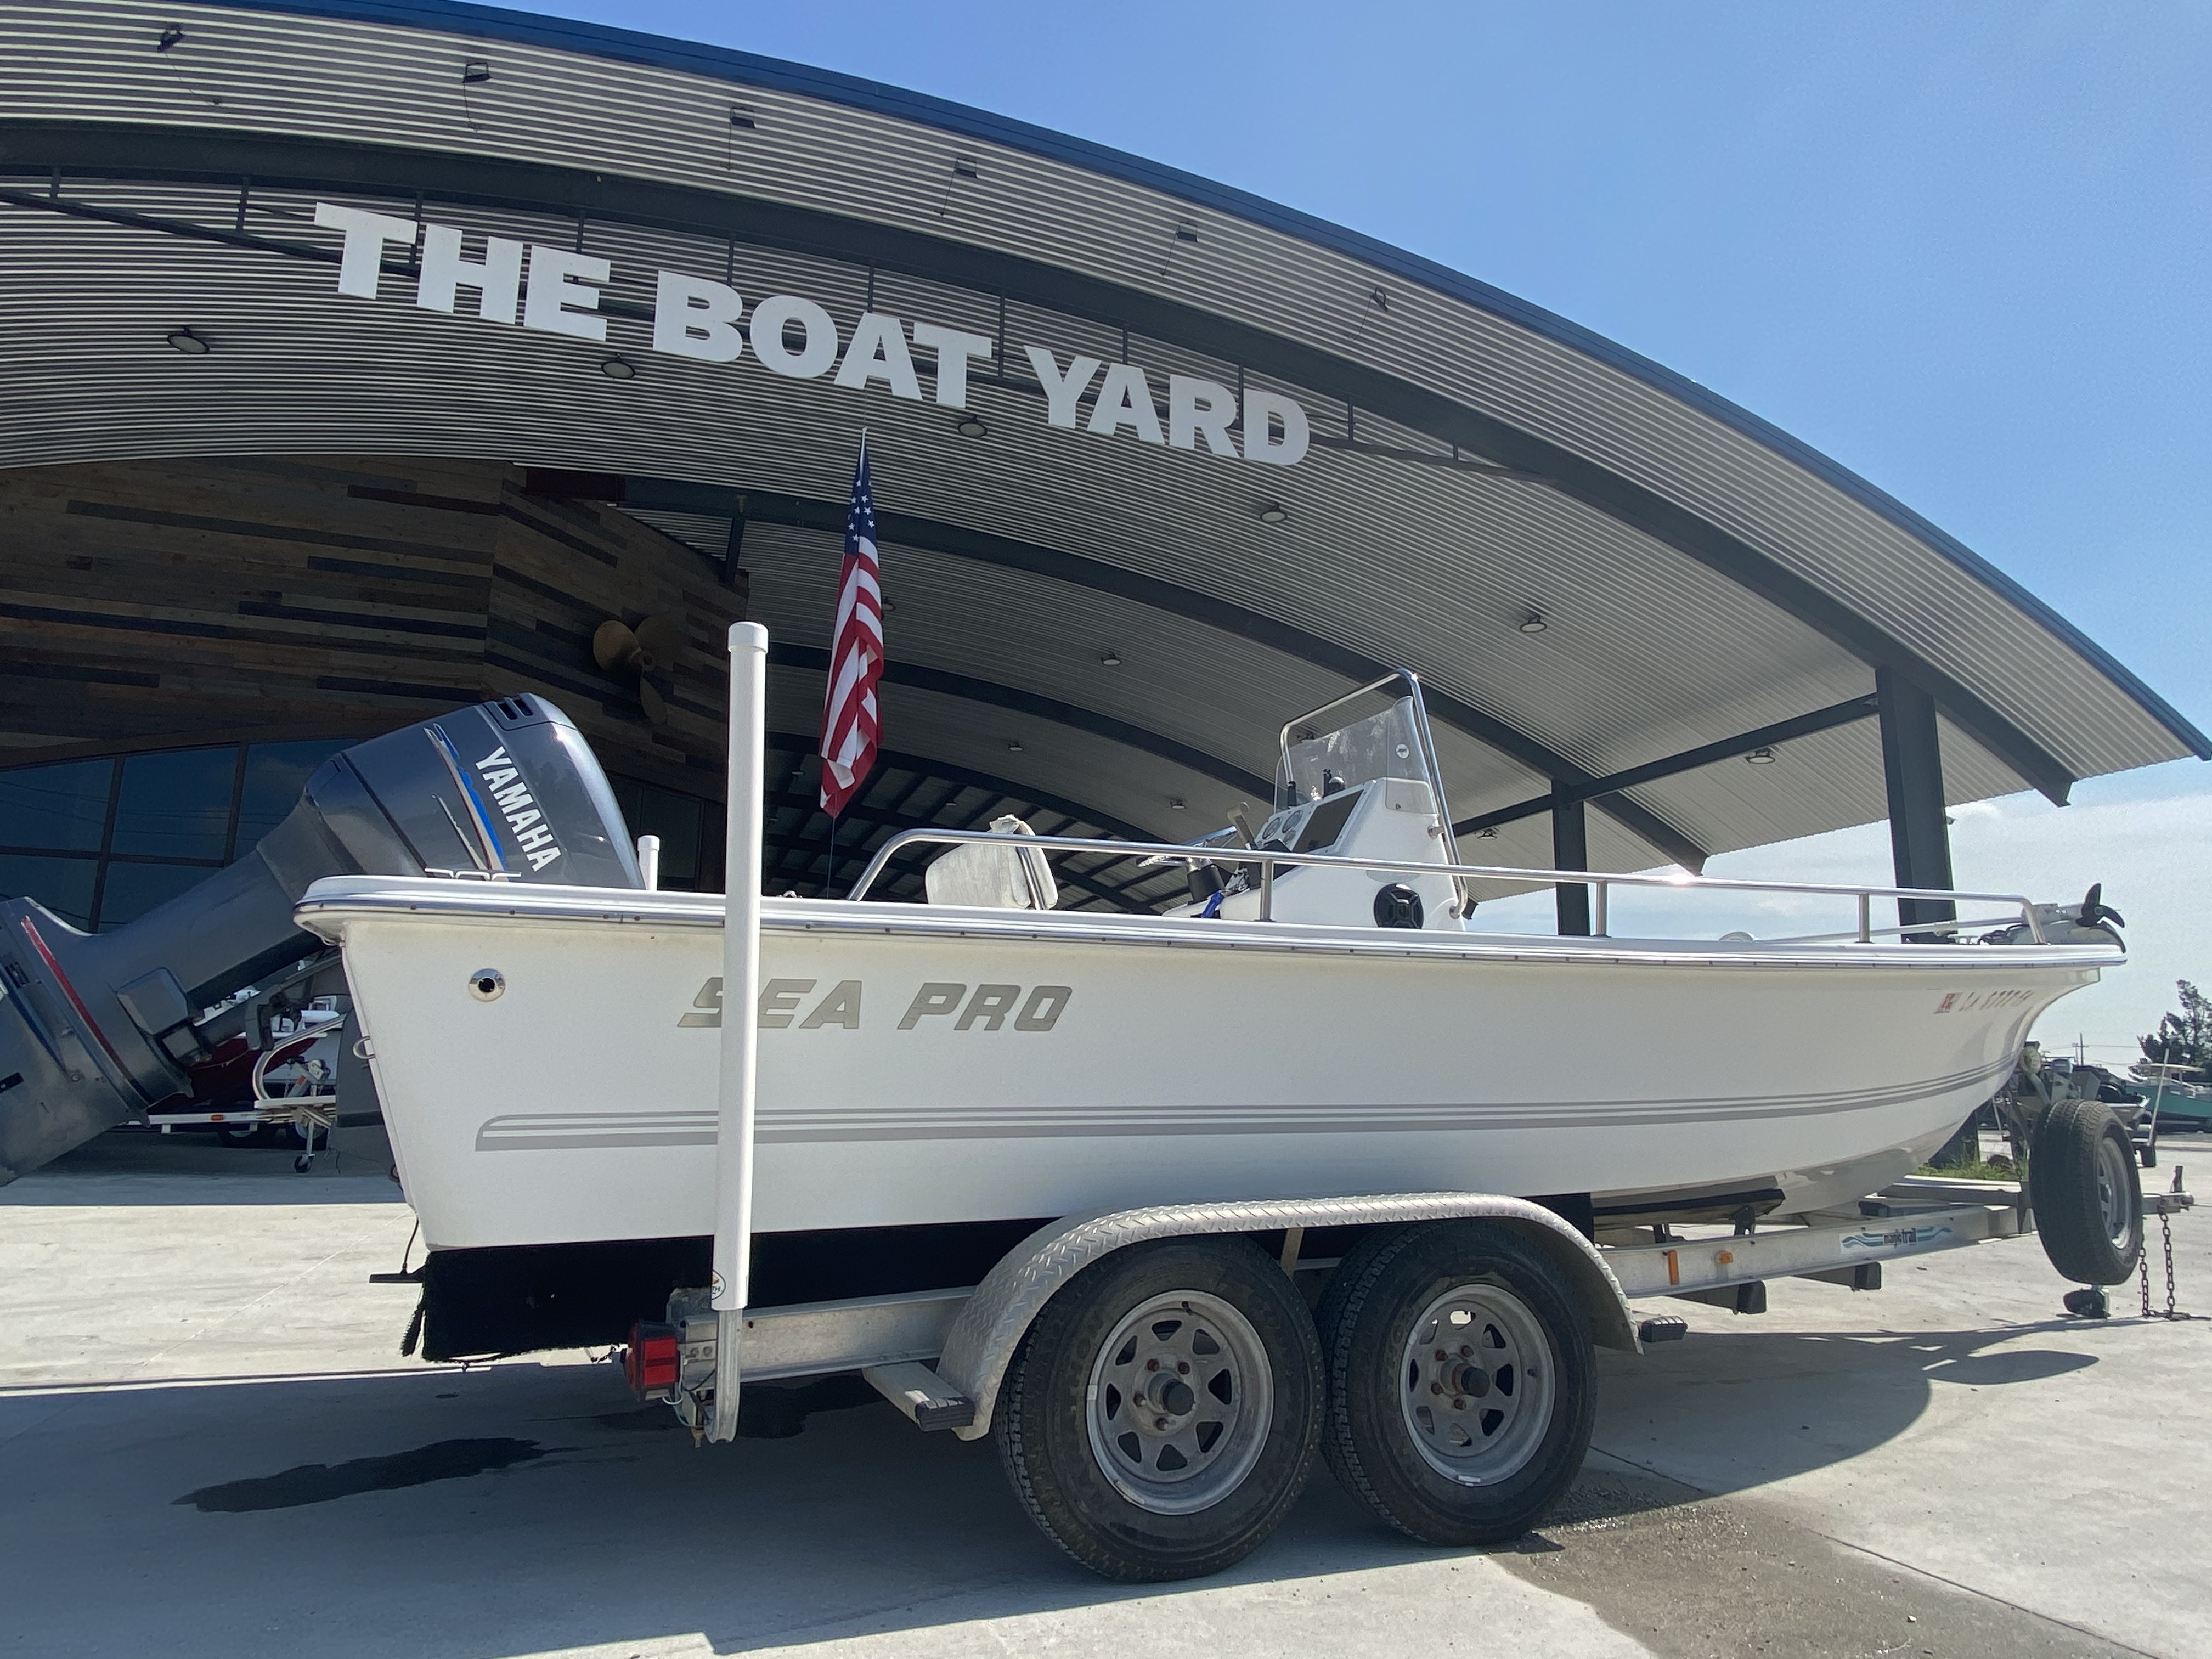 2003 Sea Pro boat for sale, model of the boat is SV2100 & Image # 2 of 12